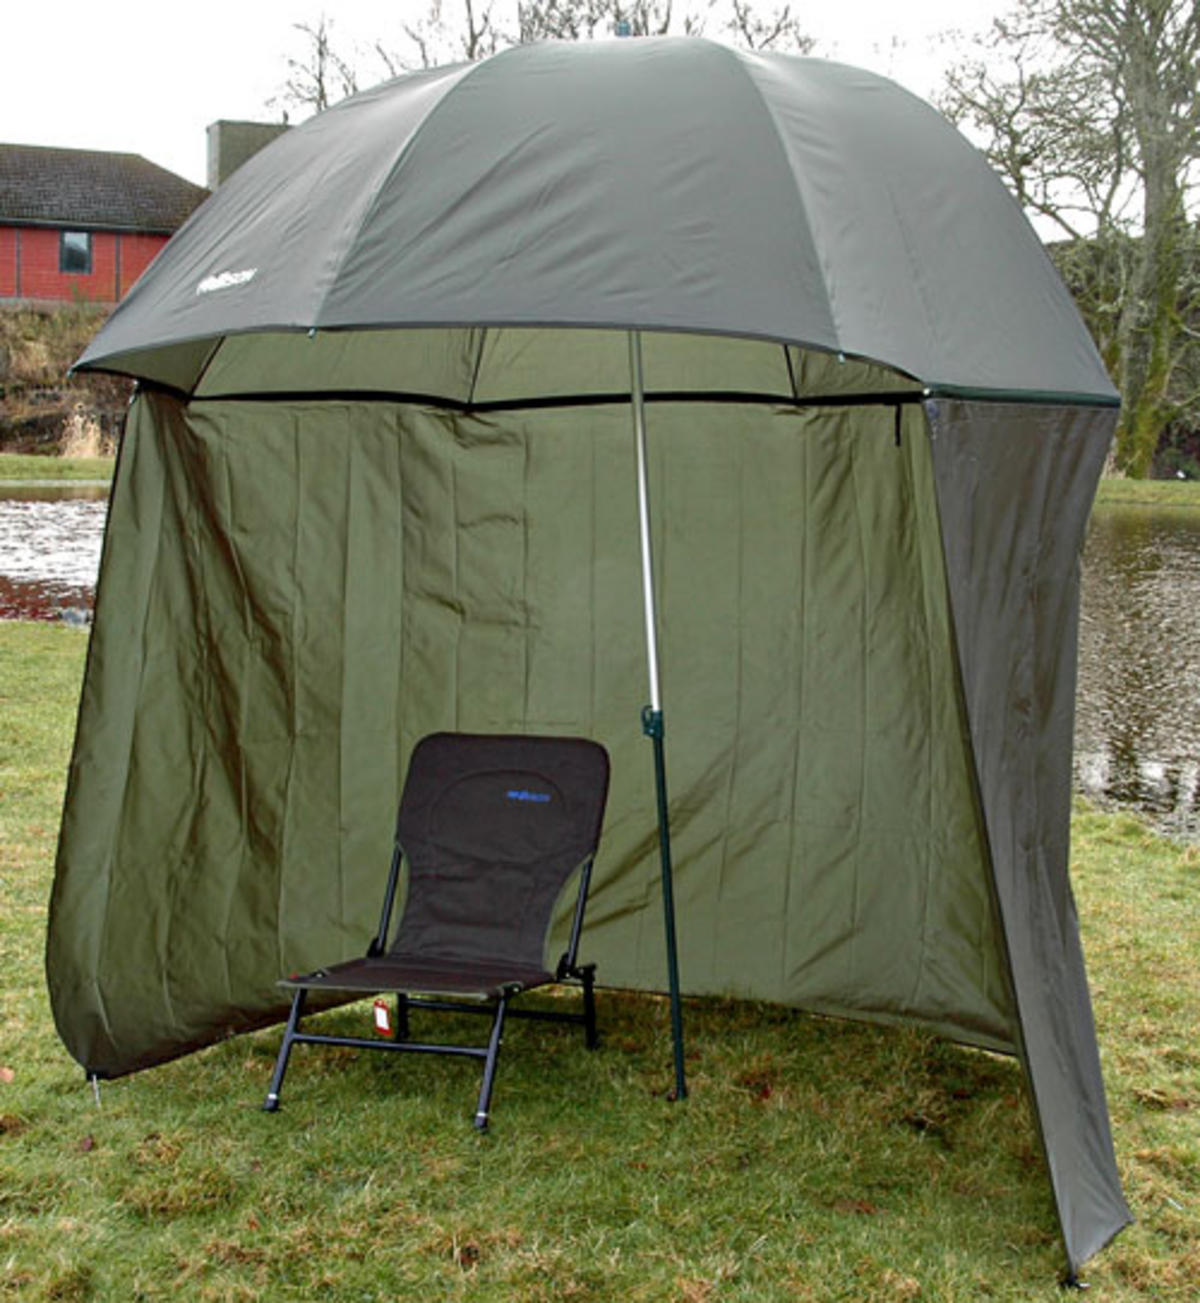 fishing chair tent x rocker gaming power cable bison top tilt umbrella brolly shelter all styles